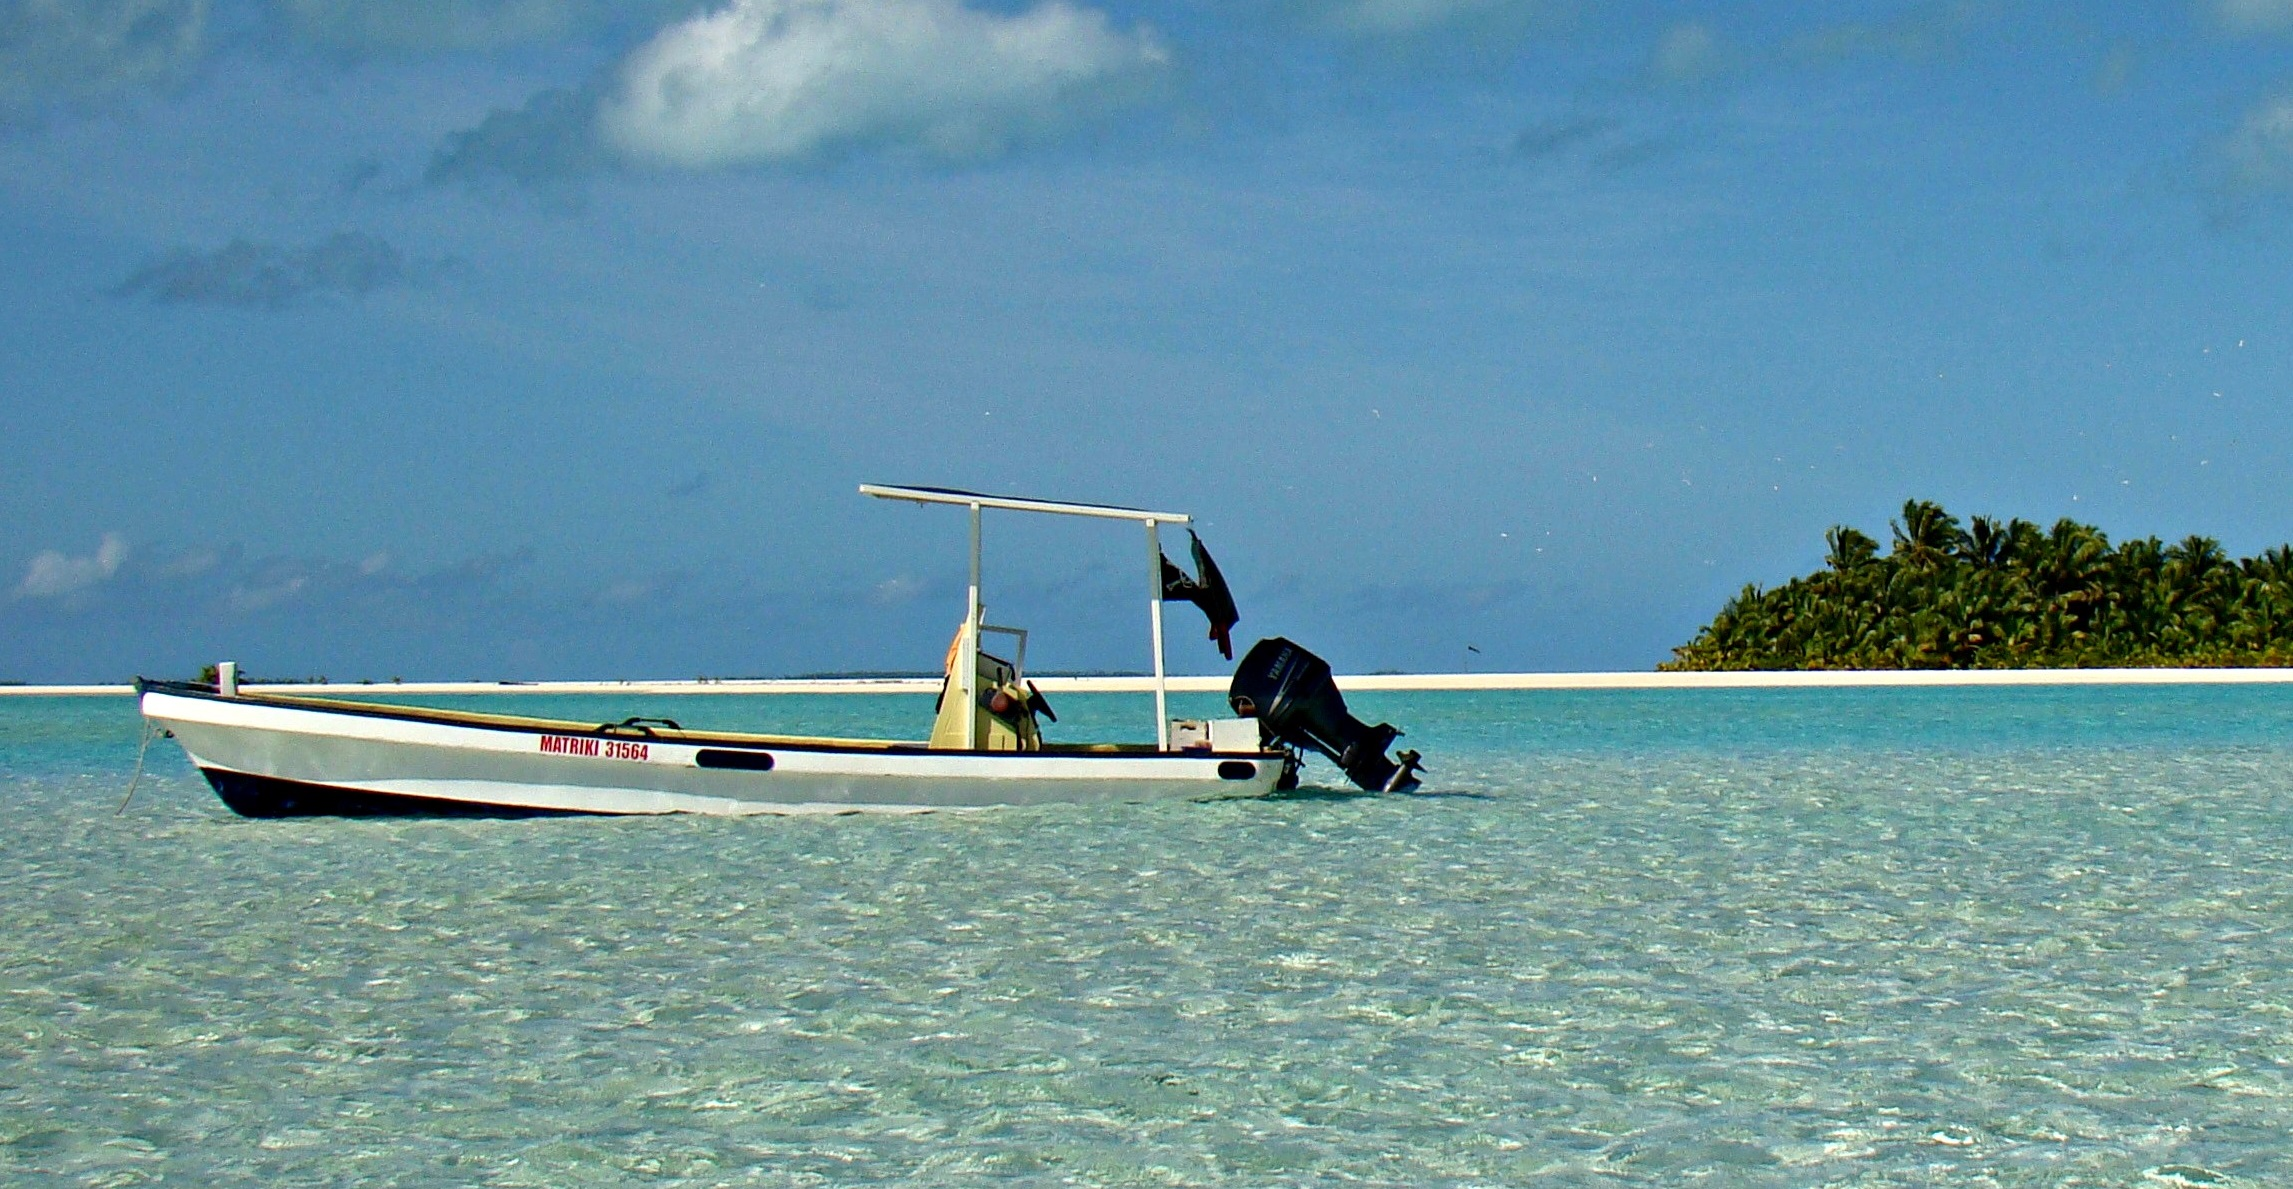 Matriki's 7 meter long boat is equipped for Aitutaki fishing for tuna, mahi mahi, wahoo